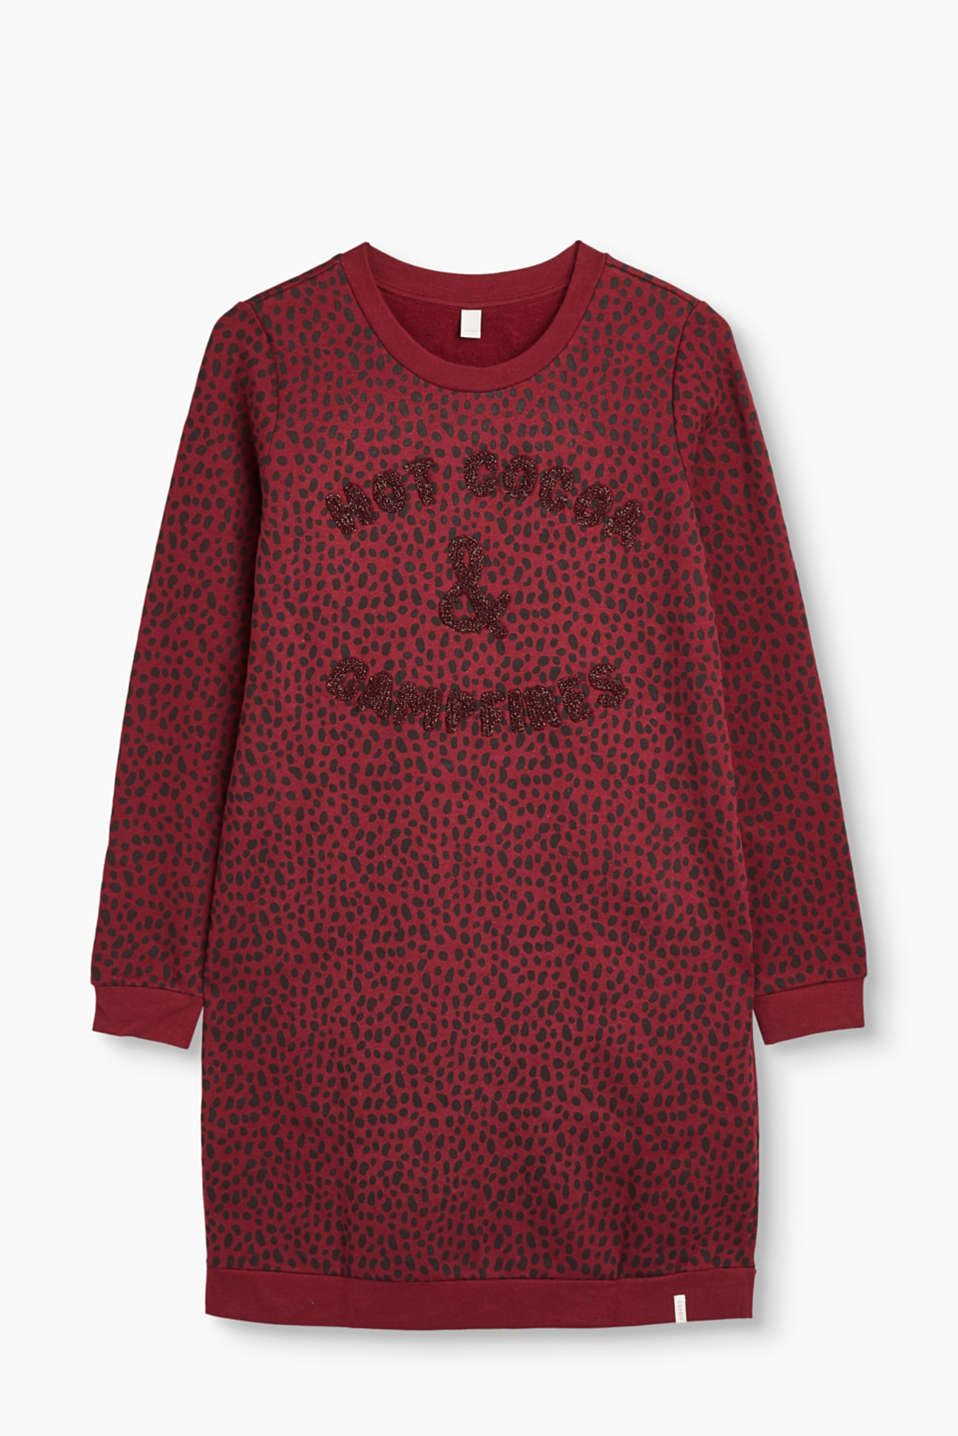 Esprit - Embroidered sweatshirt dress, 100% cotton